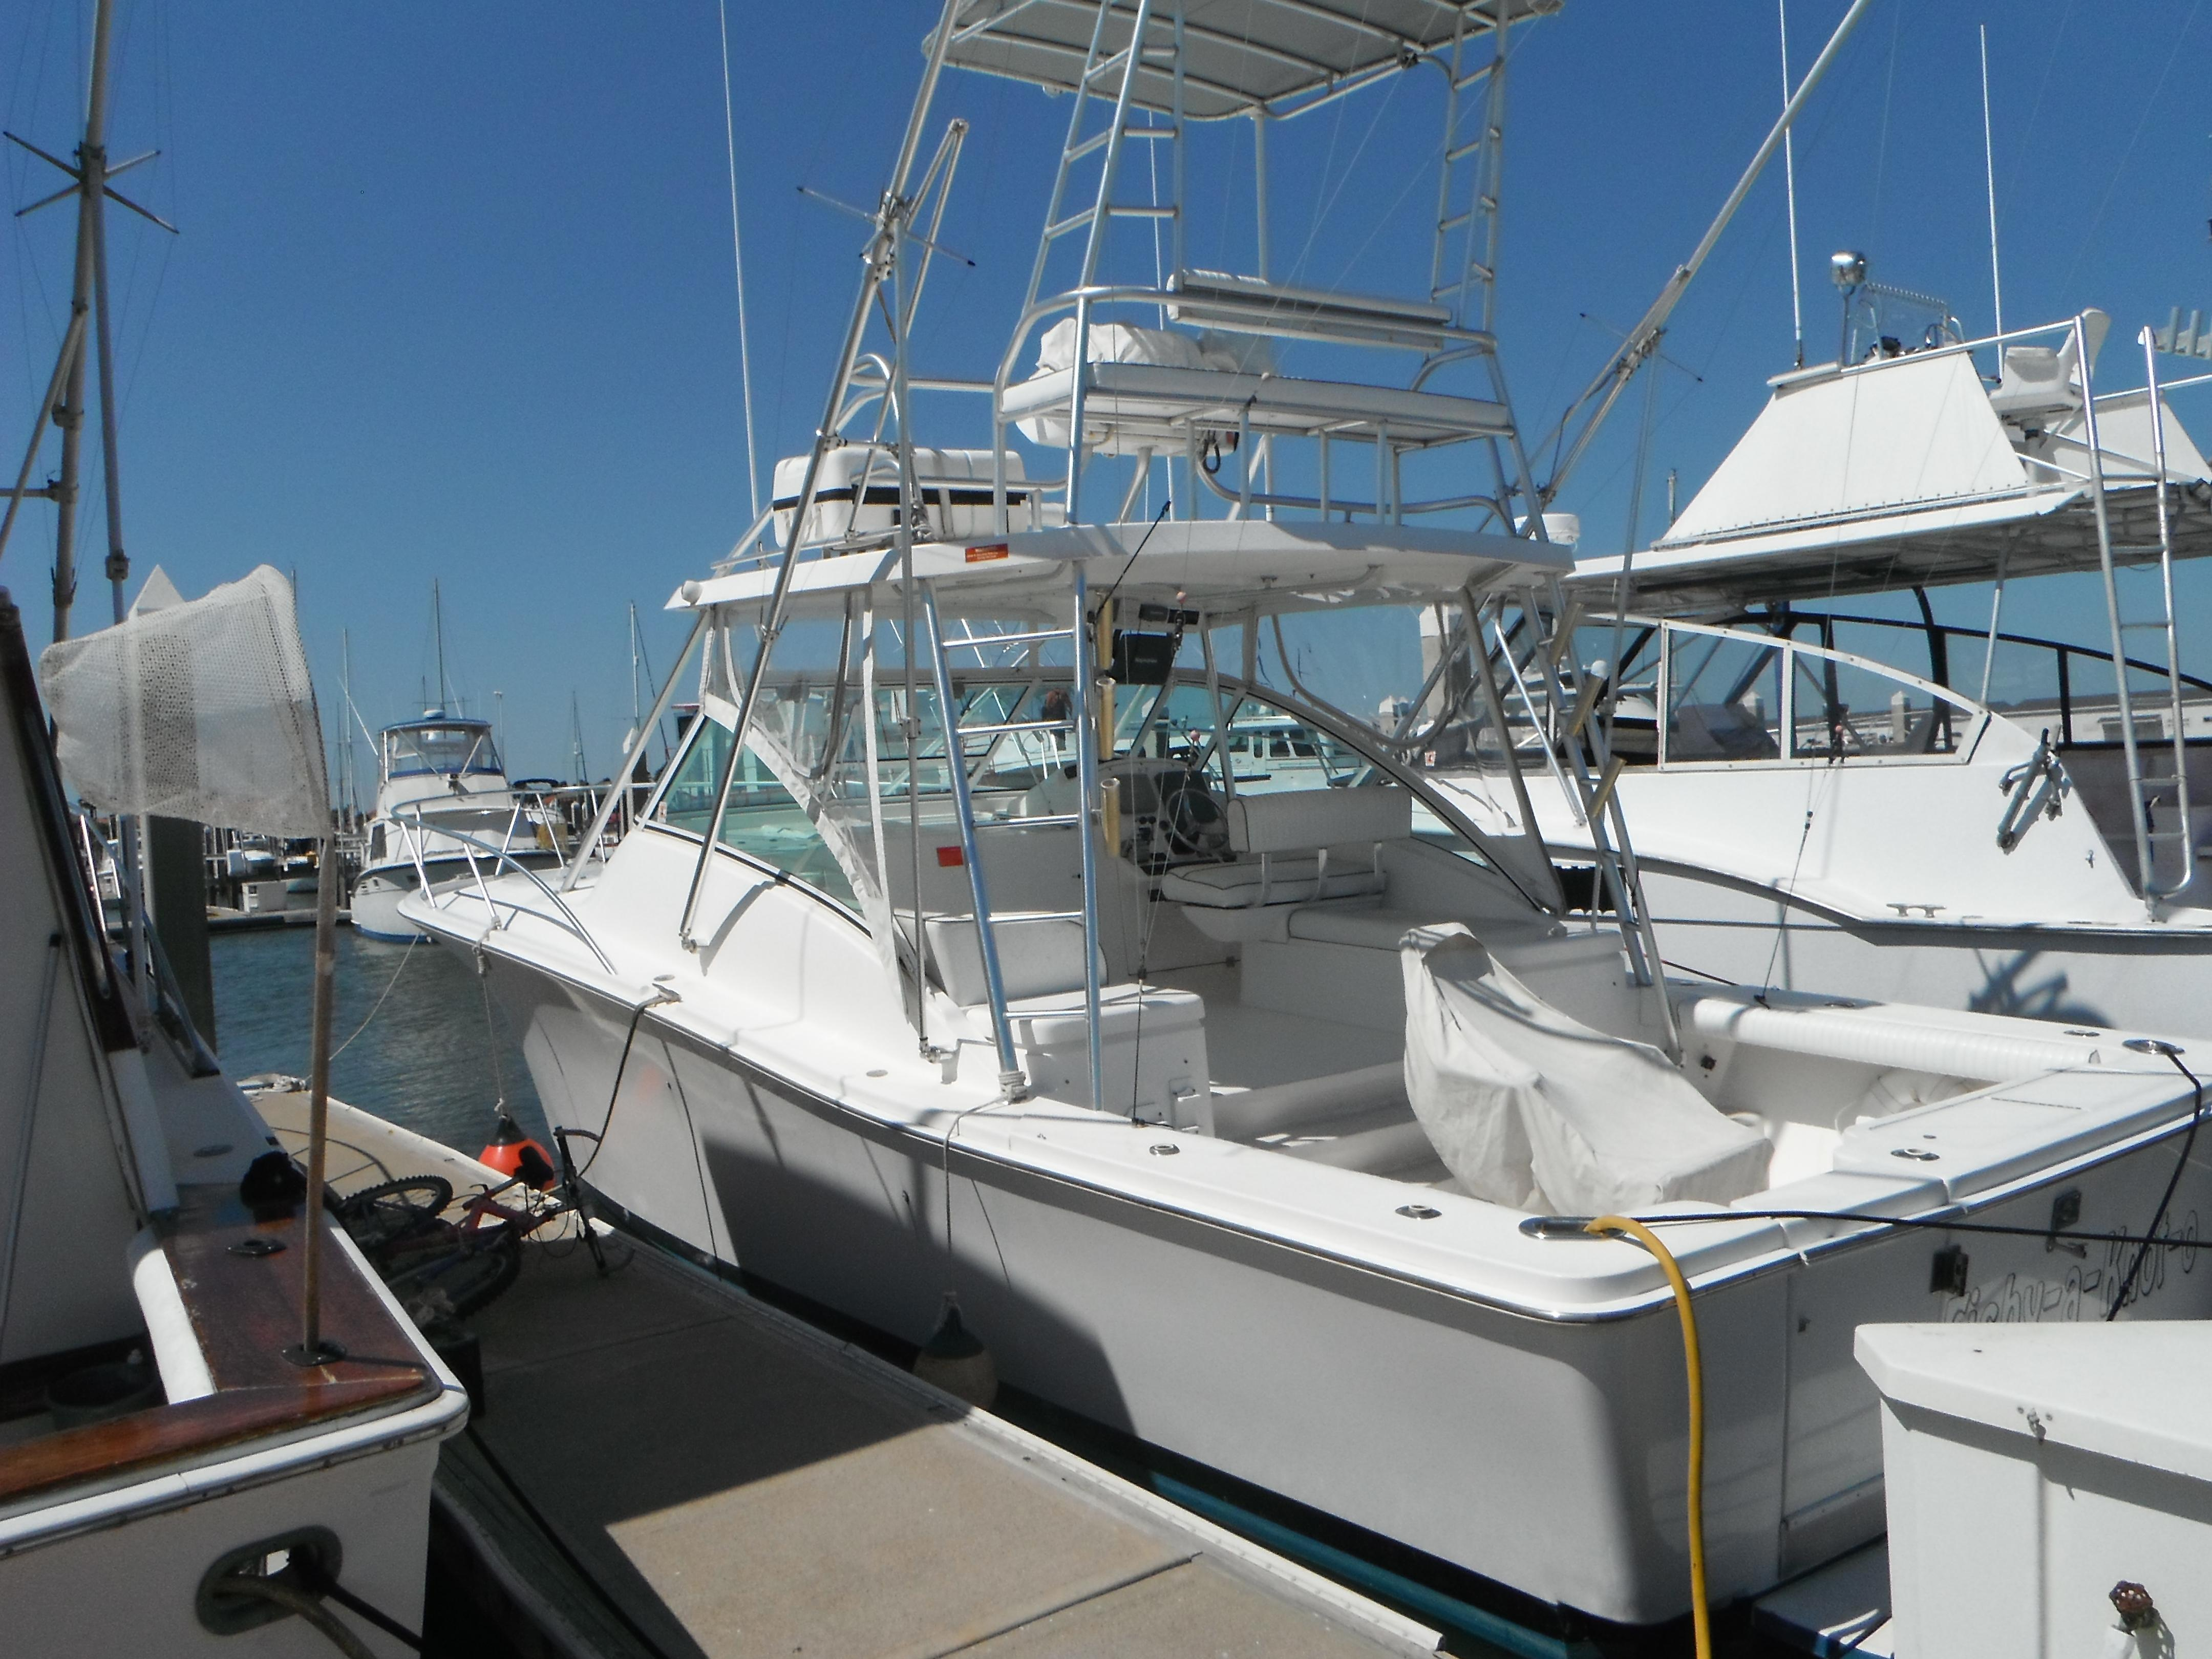 Marlin (TX) United States  City pictures : 2003 Luhrs 36SX Open Power Boat For Sale www.yachtworld.com